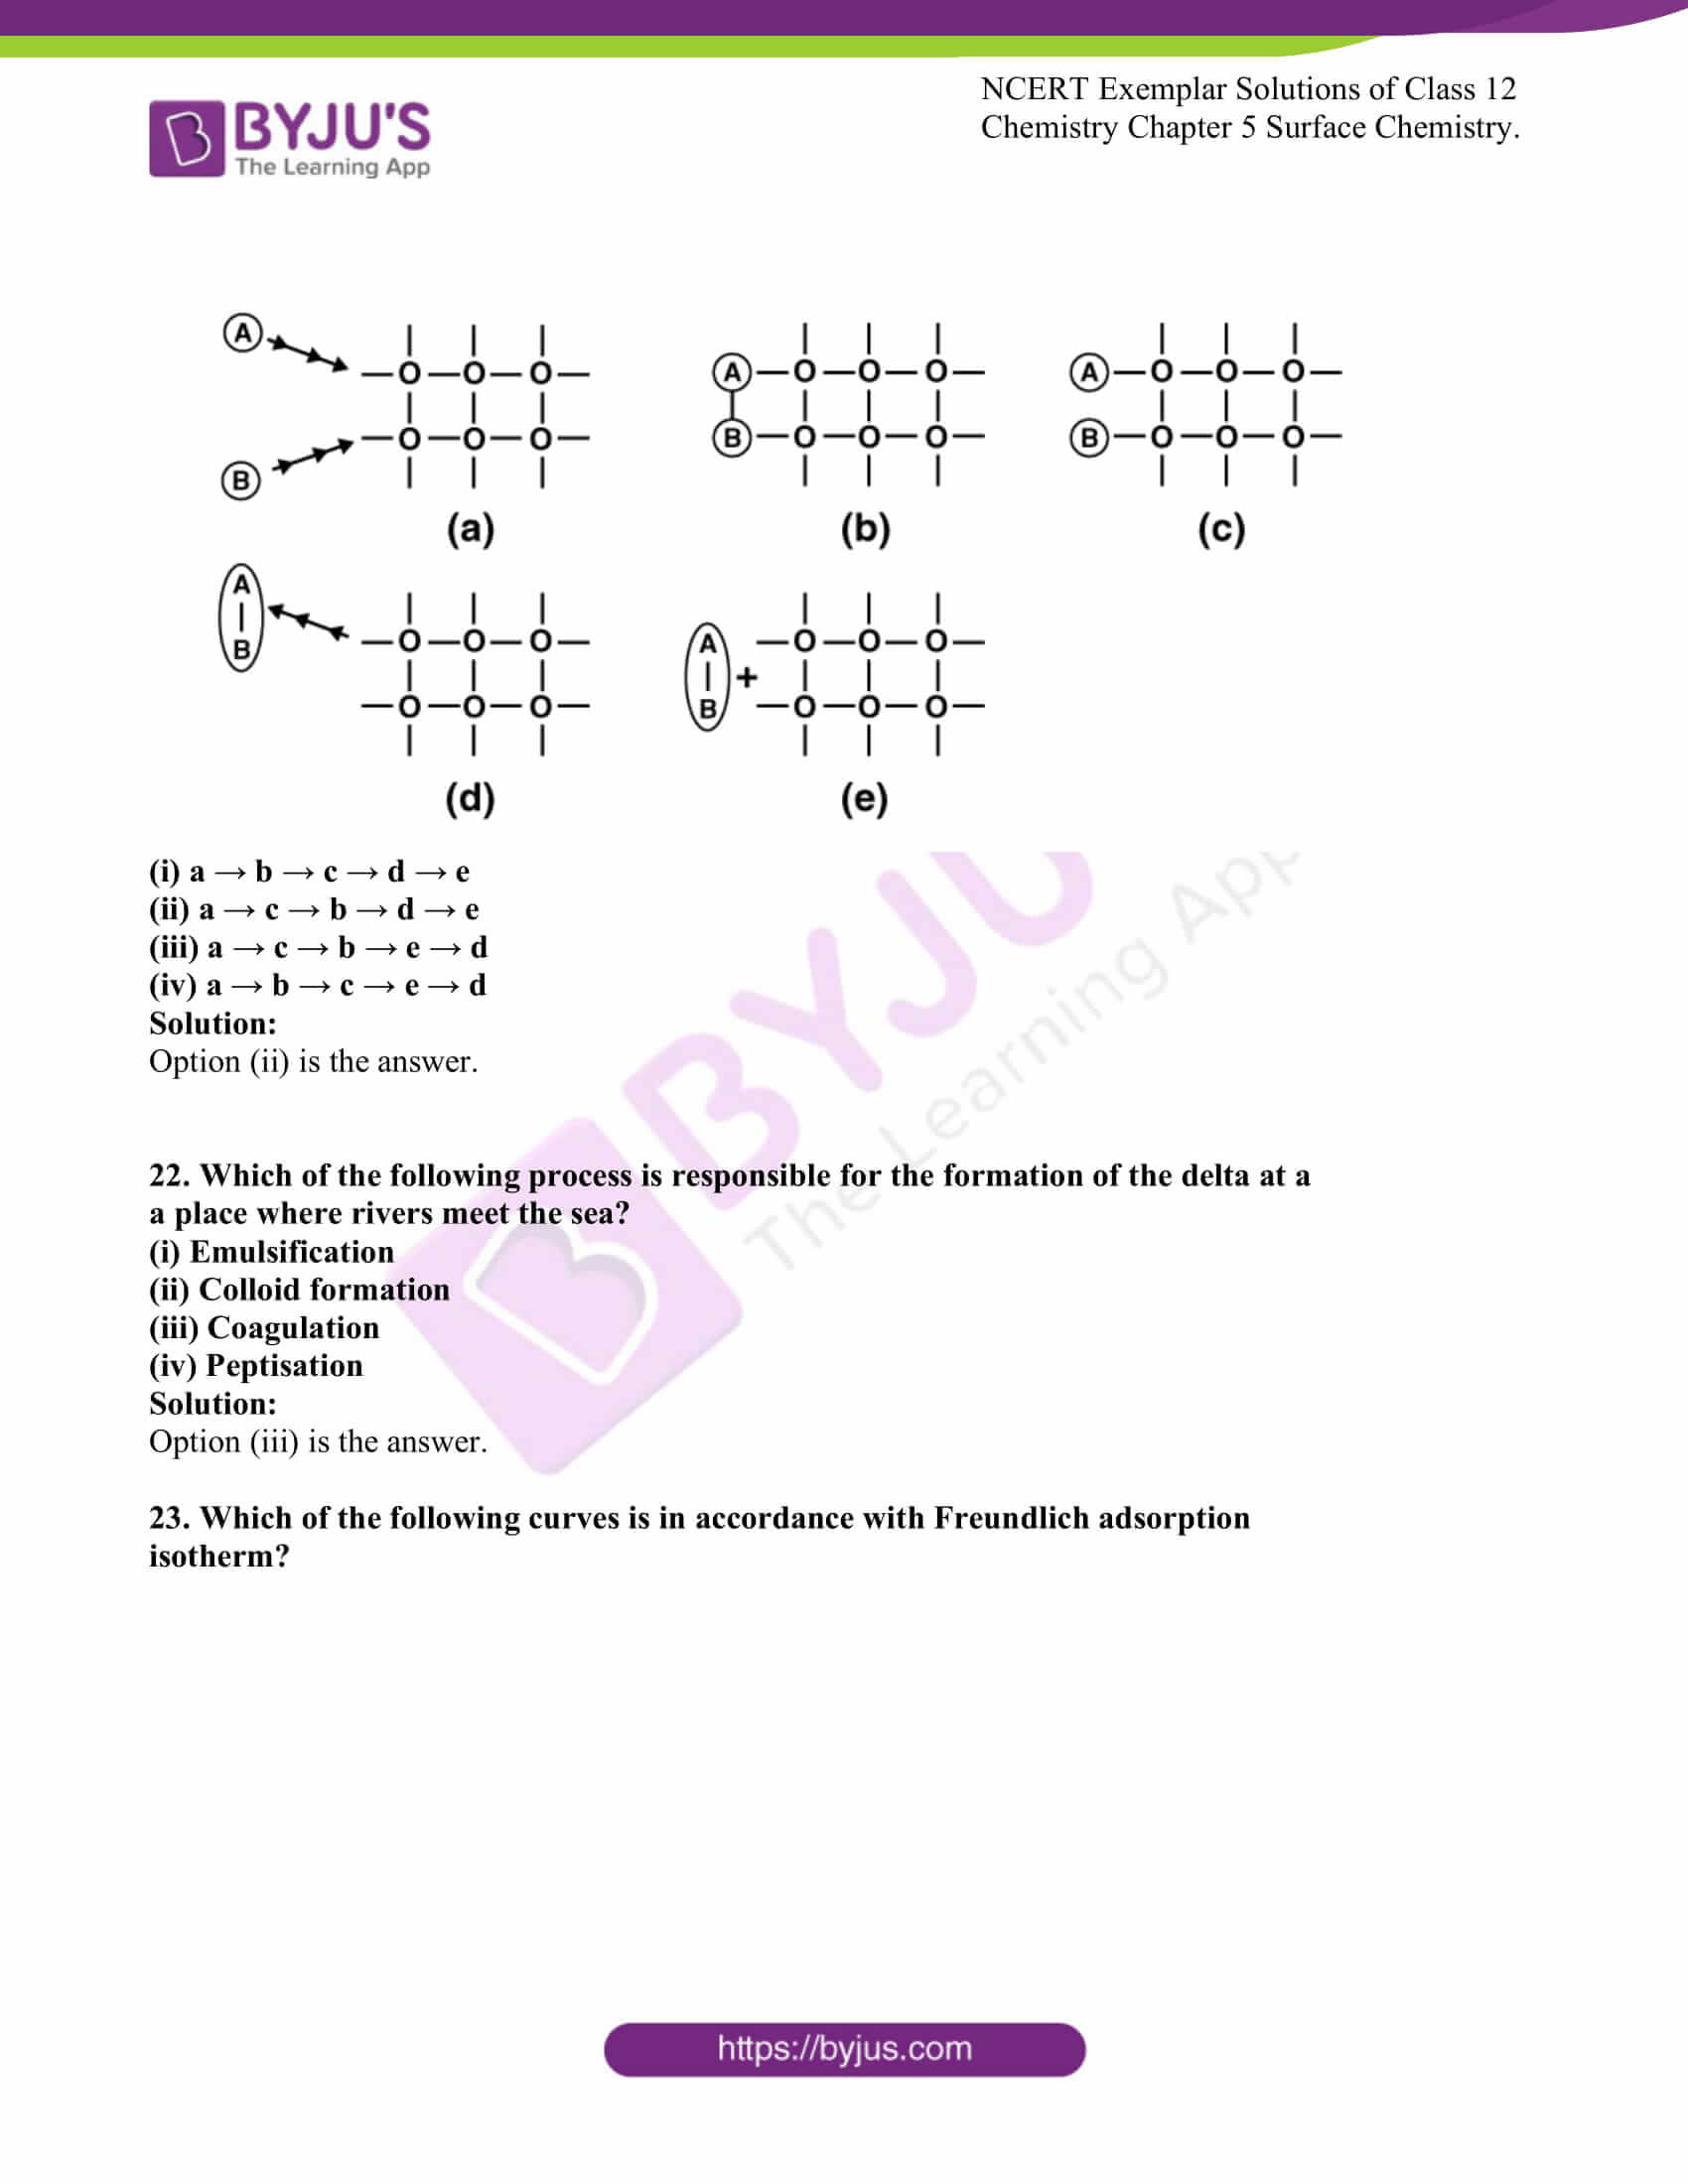 ncert exemplar solutions for class 12 chemistry chapter 5 surface 05